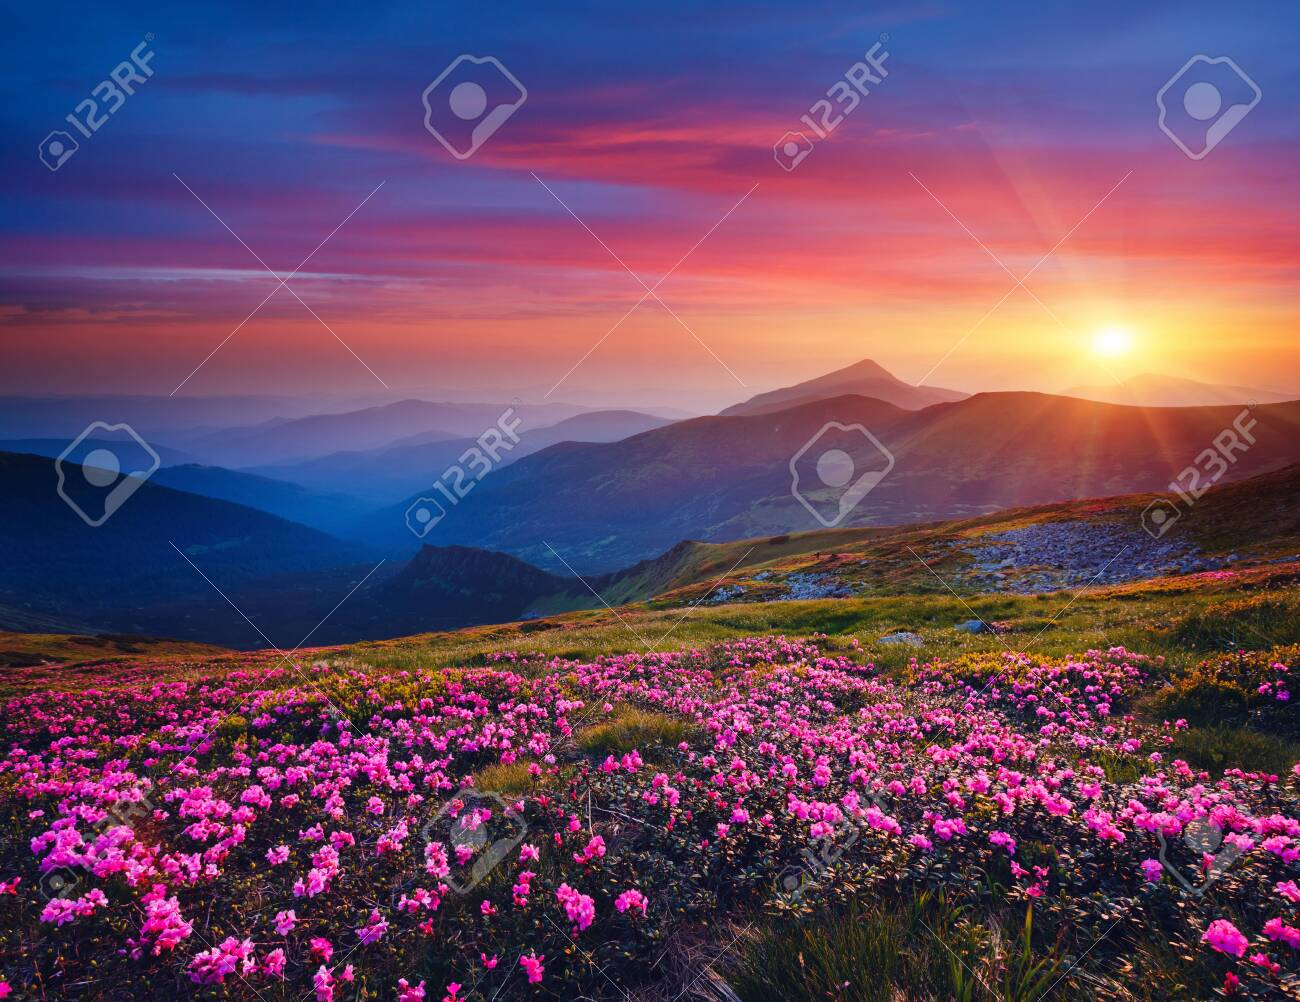 Charming pink flower rhododendrons at magical sunset. Location Carpathian mountain, Ukraine, Europe. Beautiful nature landscape. Scenic image of idyllic summer wallpaper. Discover the beauty of earth. - 144388558